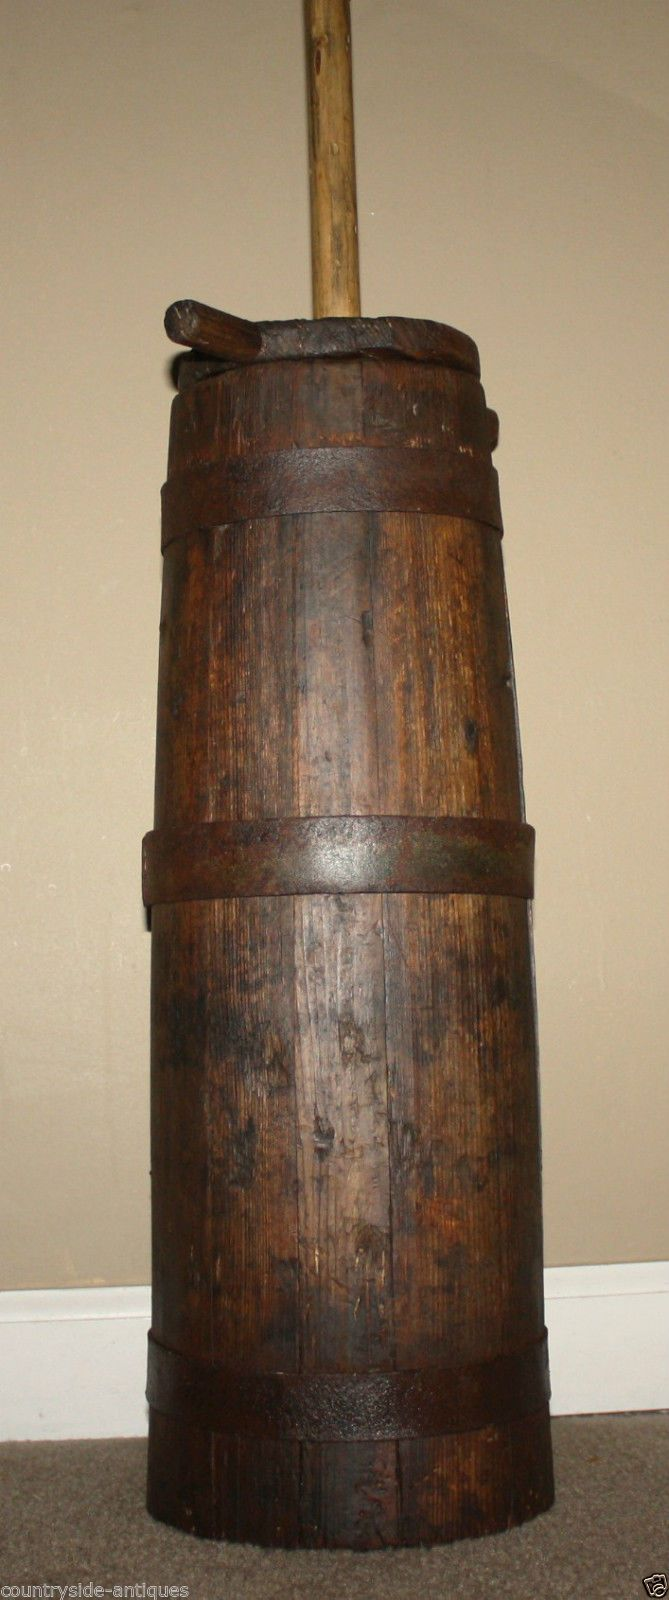 The 25 Best Primitive Antiques Ideas On Pinterest Image Cutter Antiquities And Kitchen Display